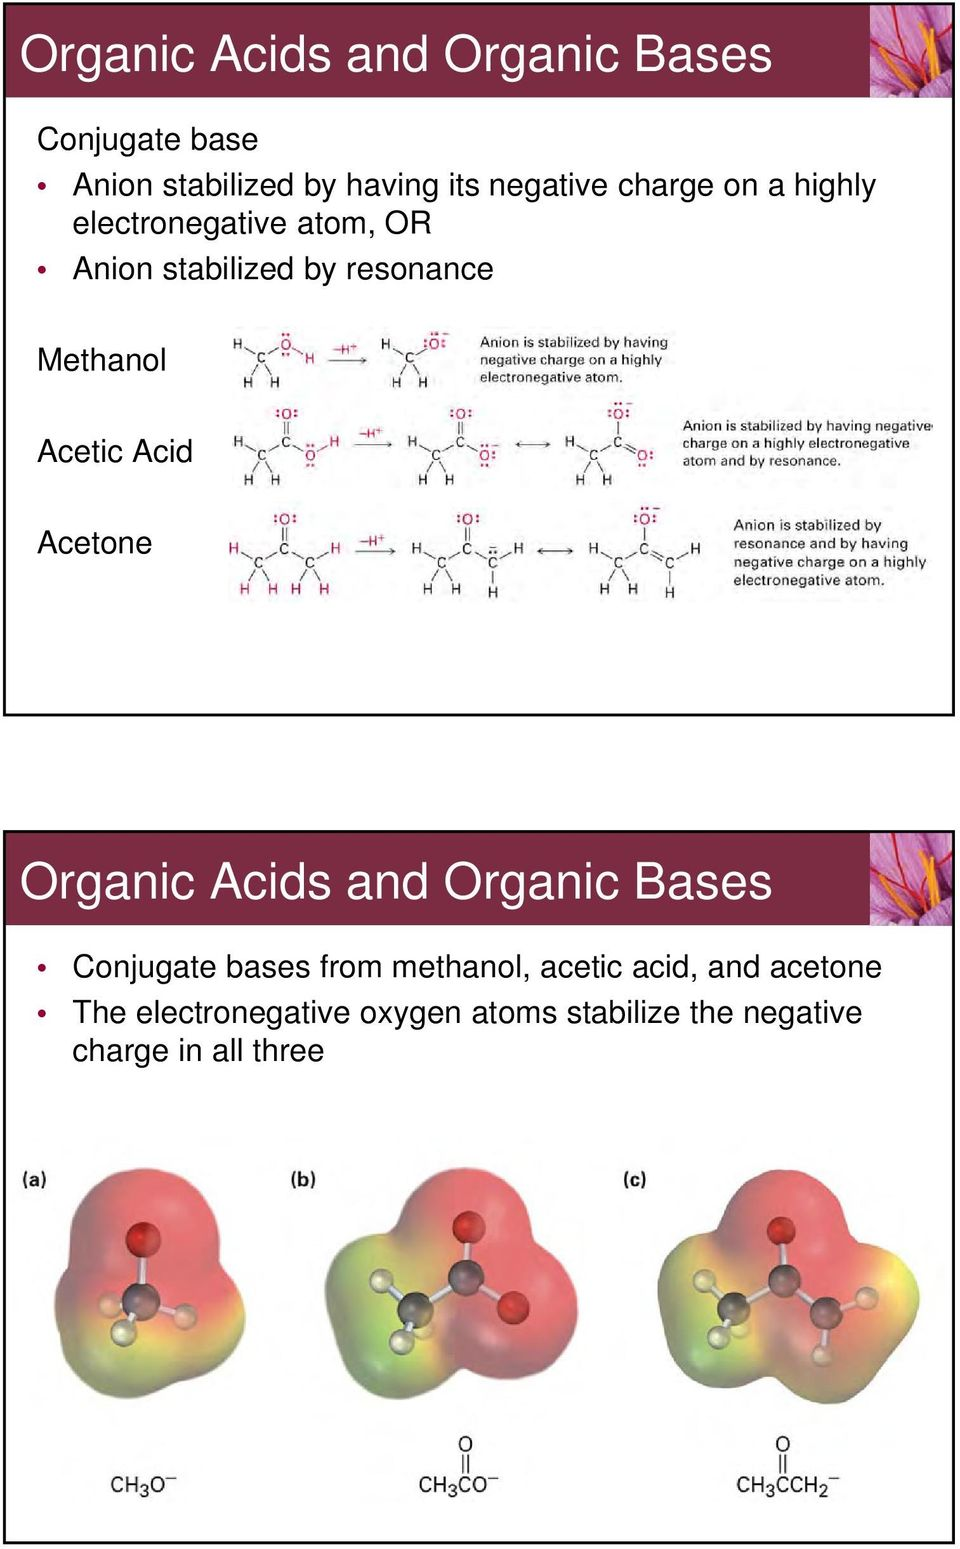 Acetic Acid Acetone Organic Acids and Organic Bases Conjugate bases from methanol,